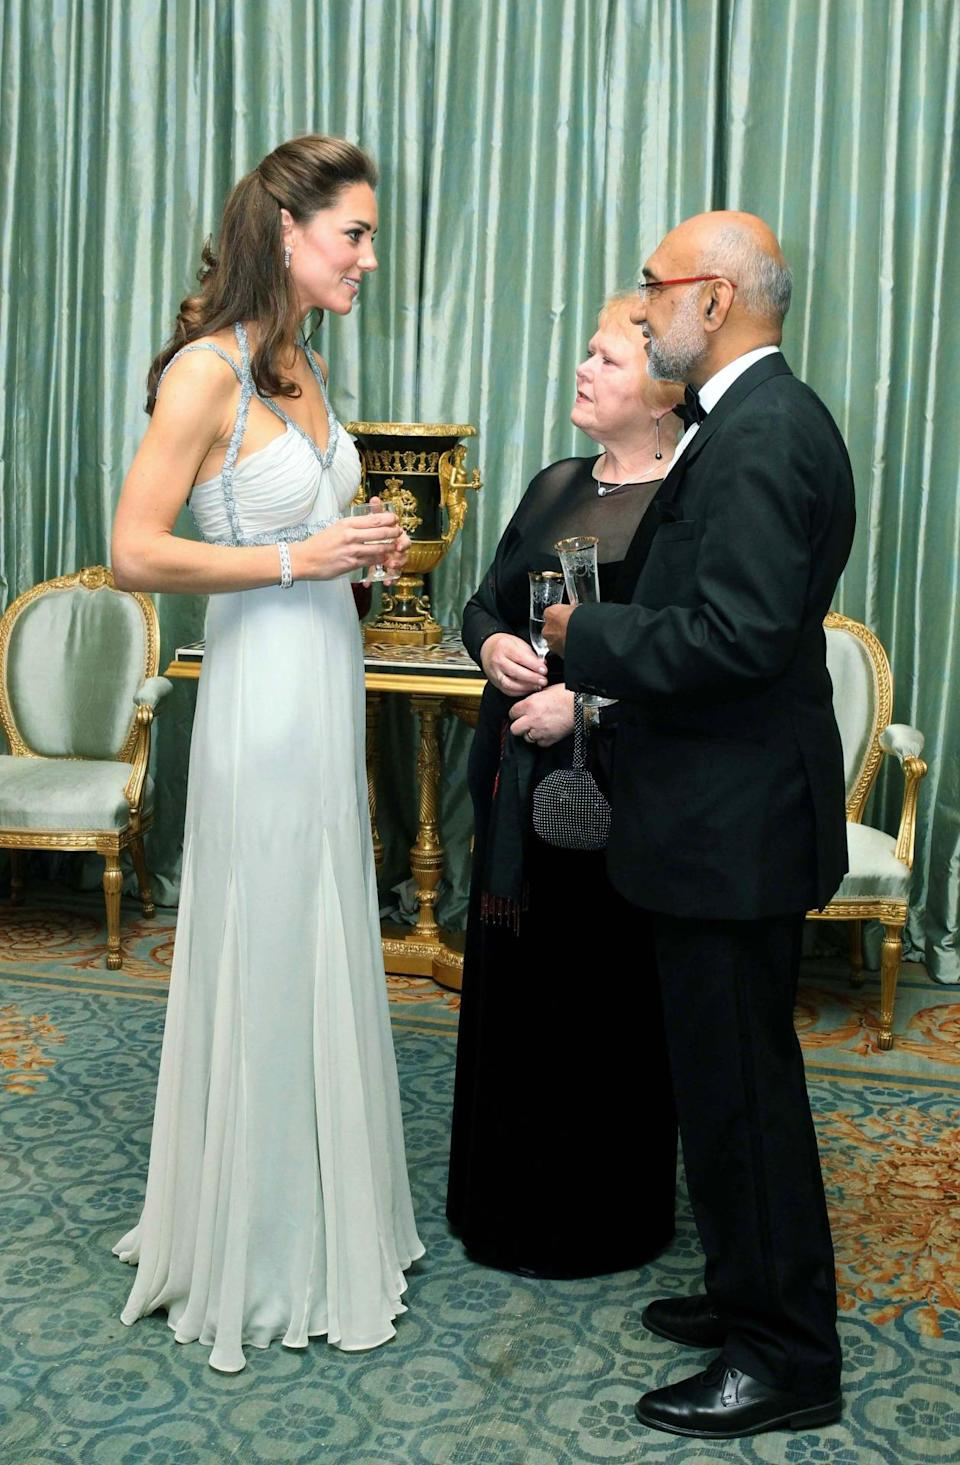 <p>The Duchess attended a charity dinner in a Grecian gown by Amanda Wakeley. She teamed the look with glittering Jimmy Choo sandals. </p><p><i>[Photo: PA]</i></p>